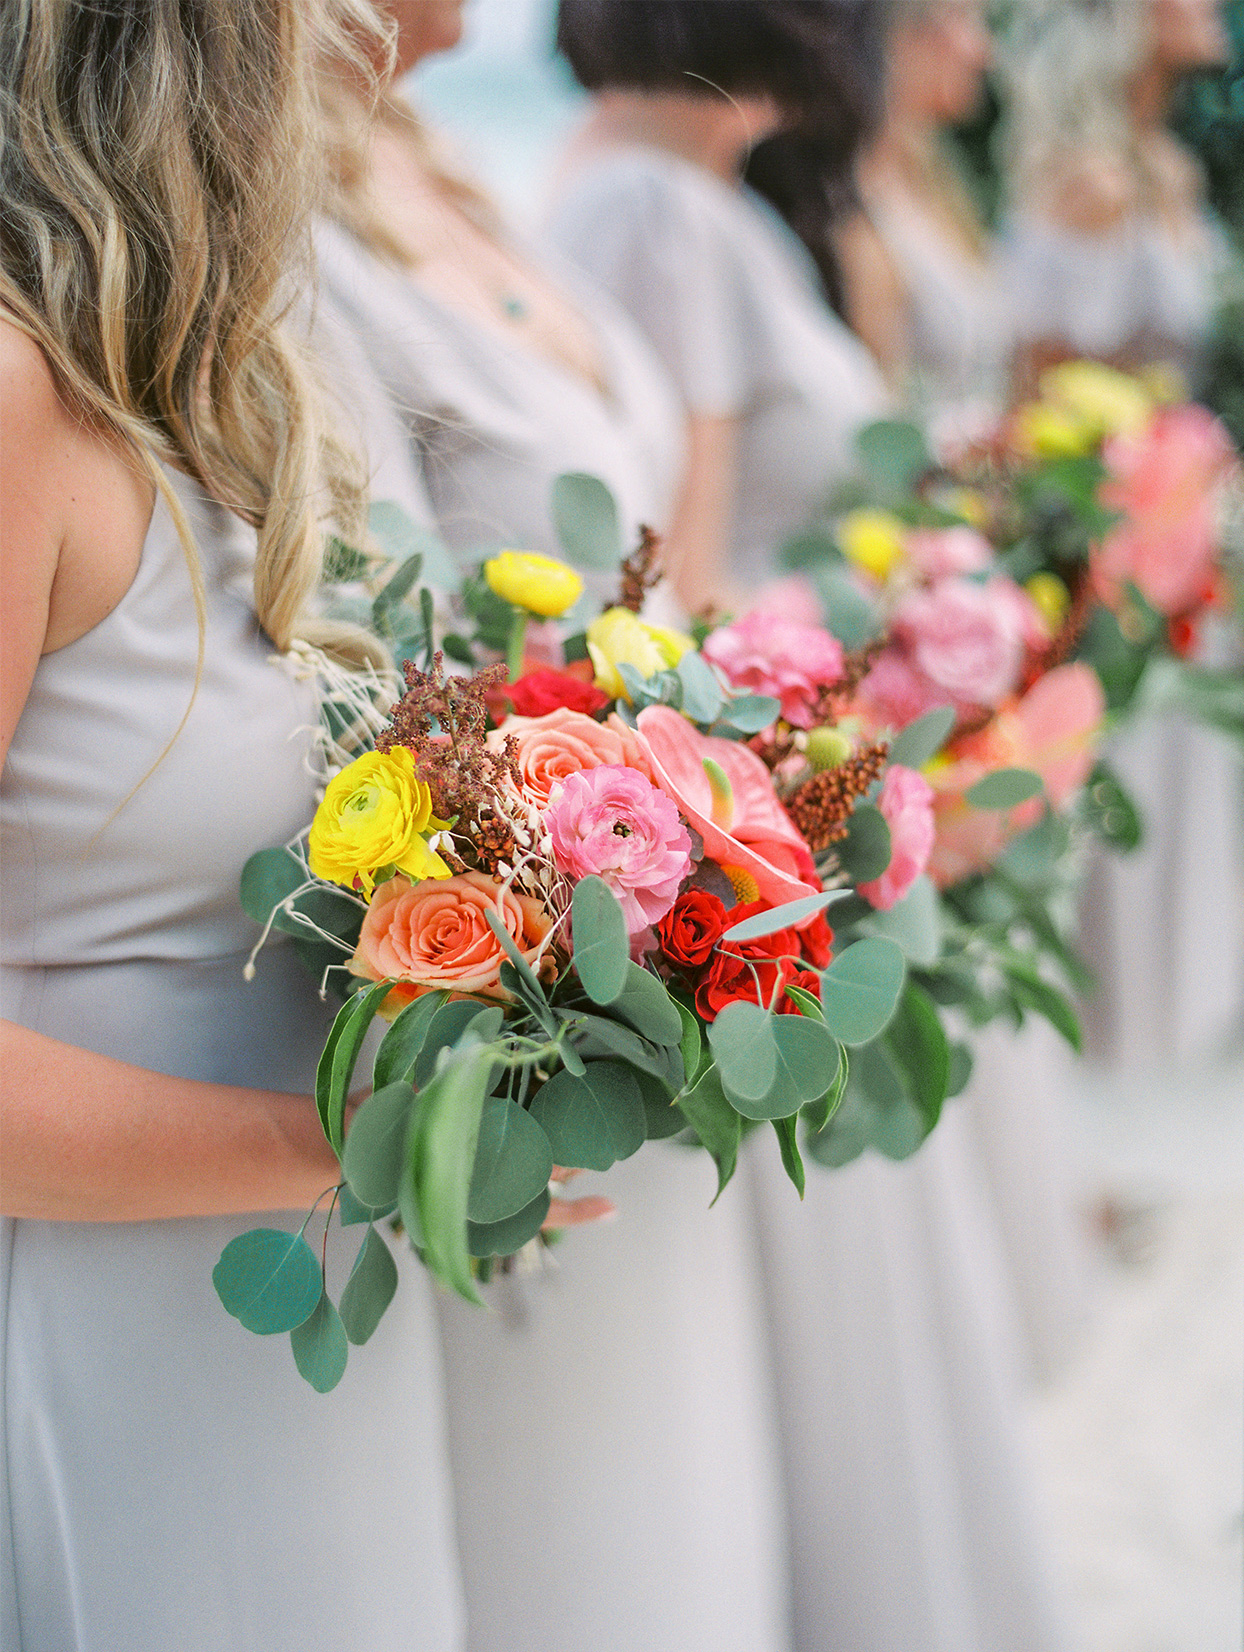 bridesmaids in light gray holding colorful wedding bouquets